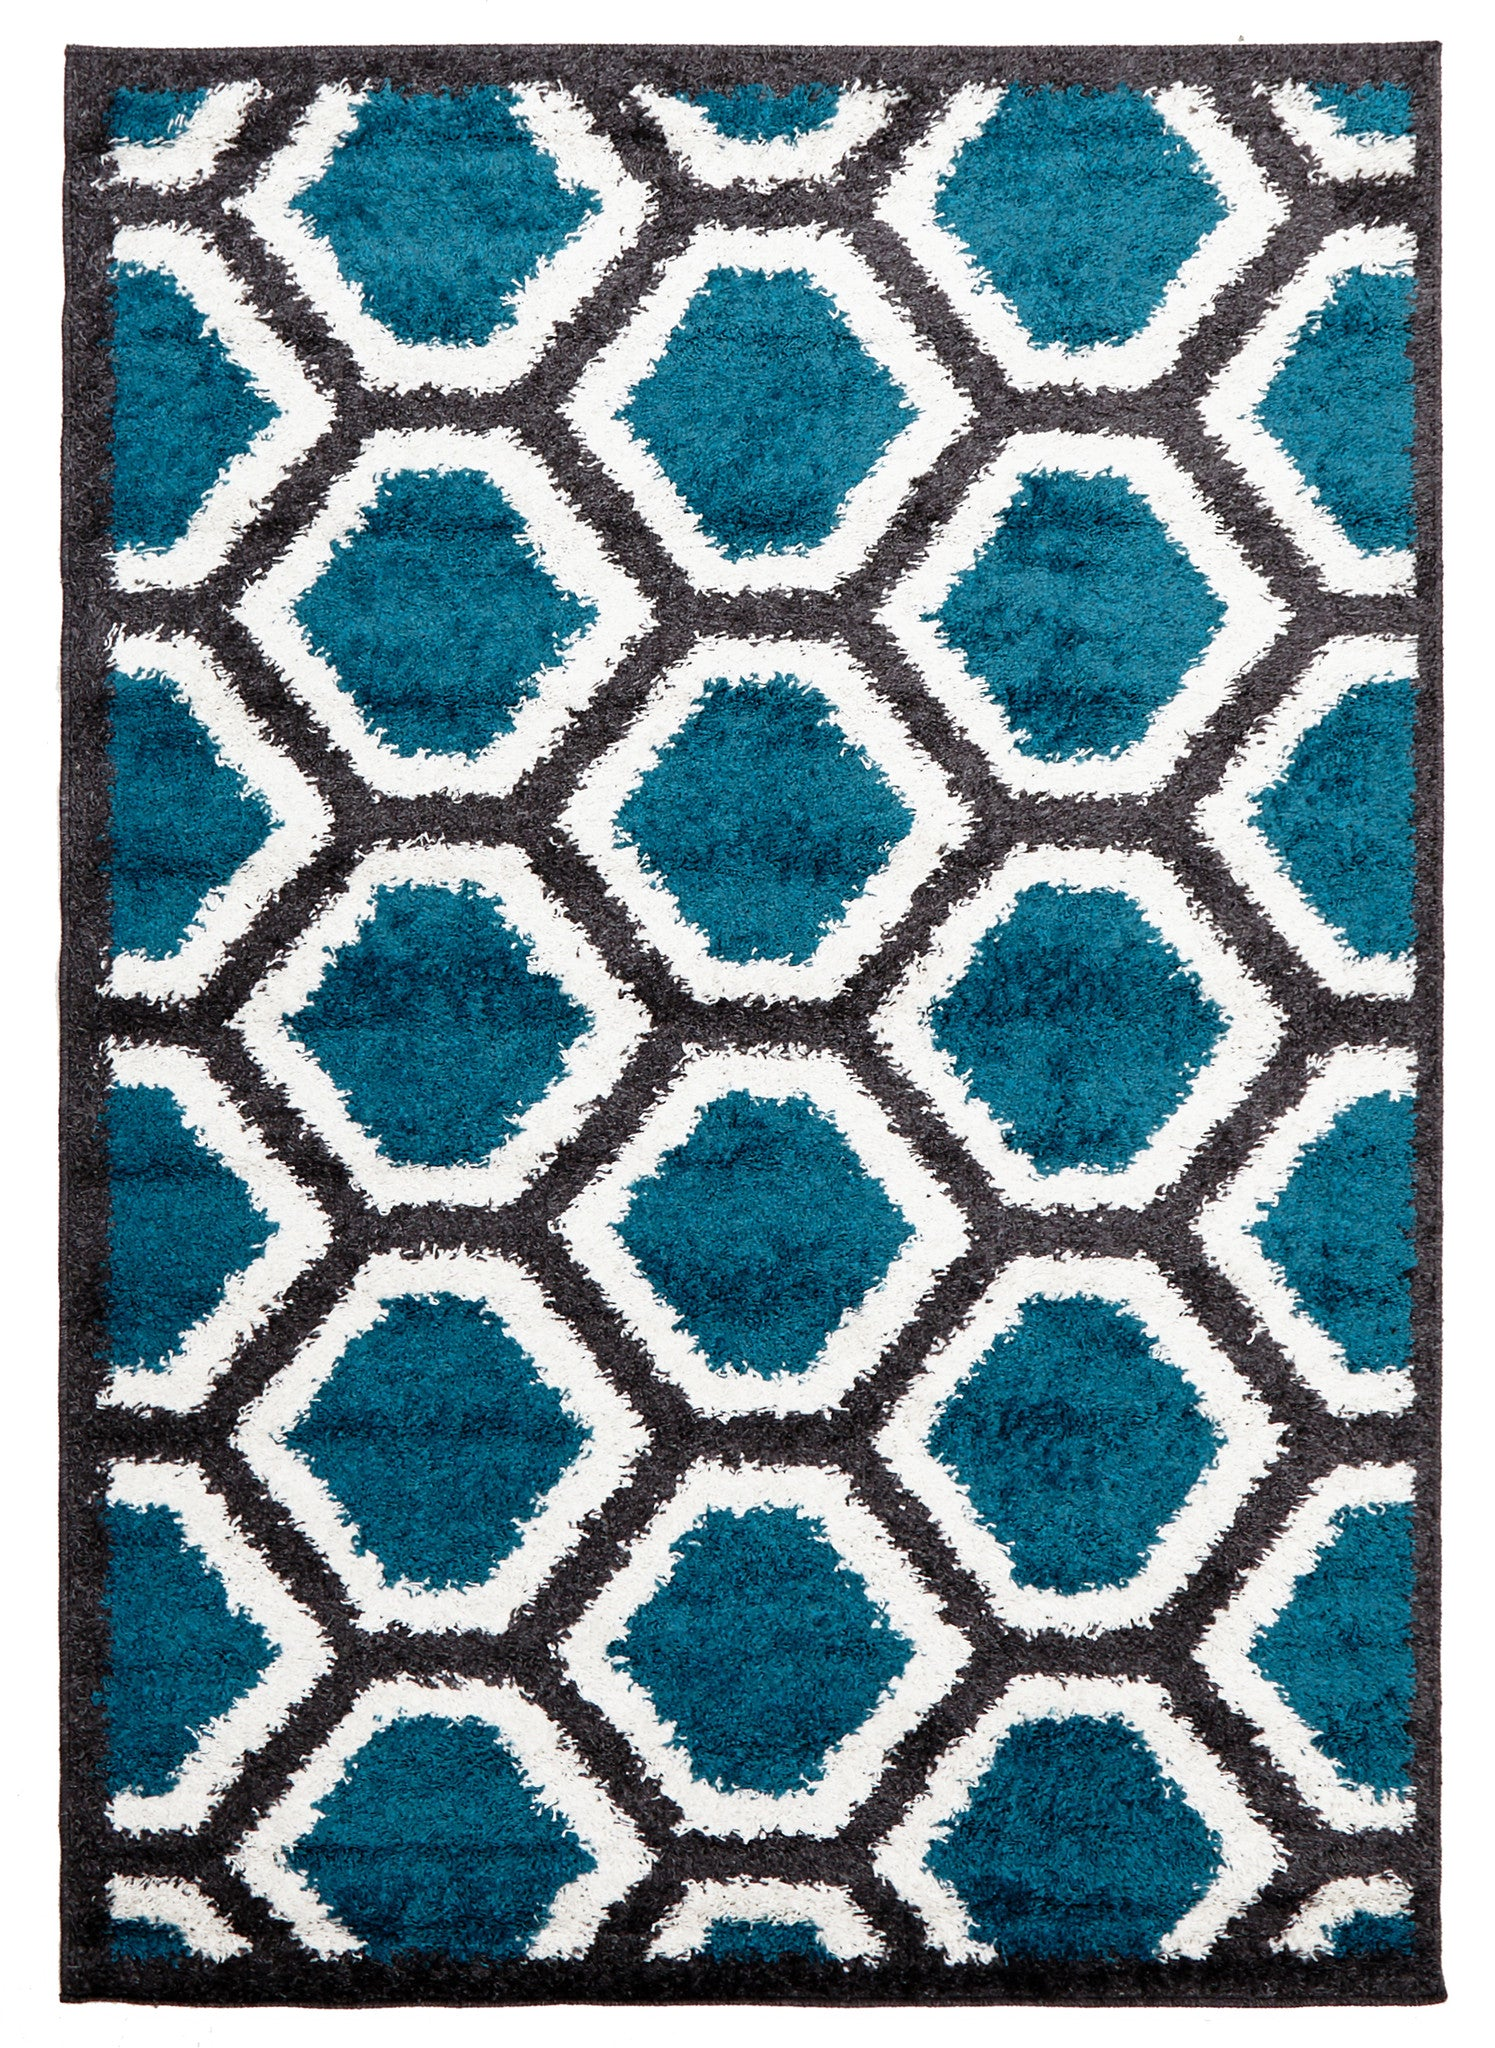 Viva 806 Shaggy Rug - Charcoal Blue